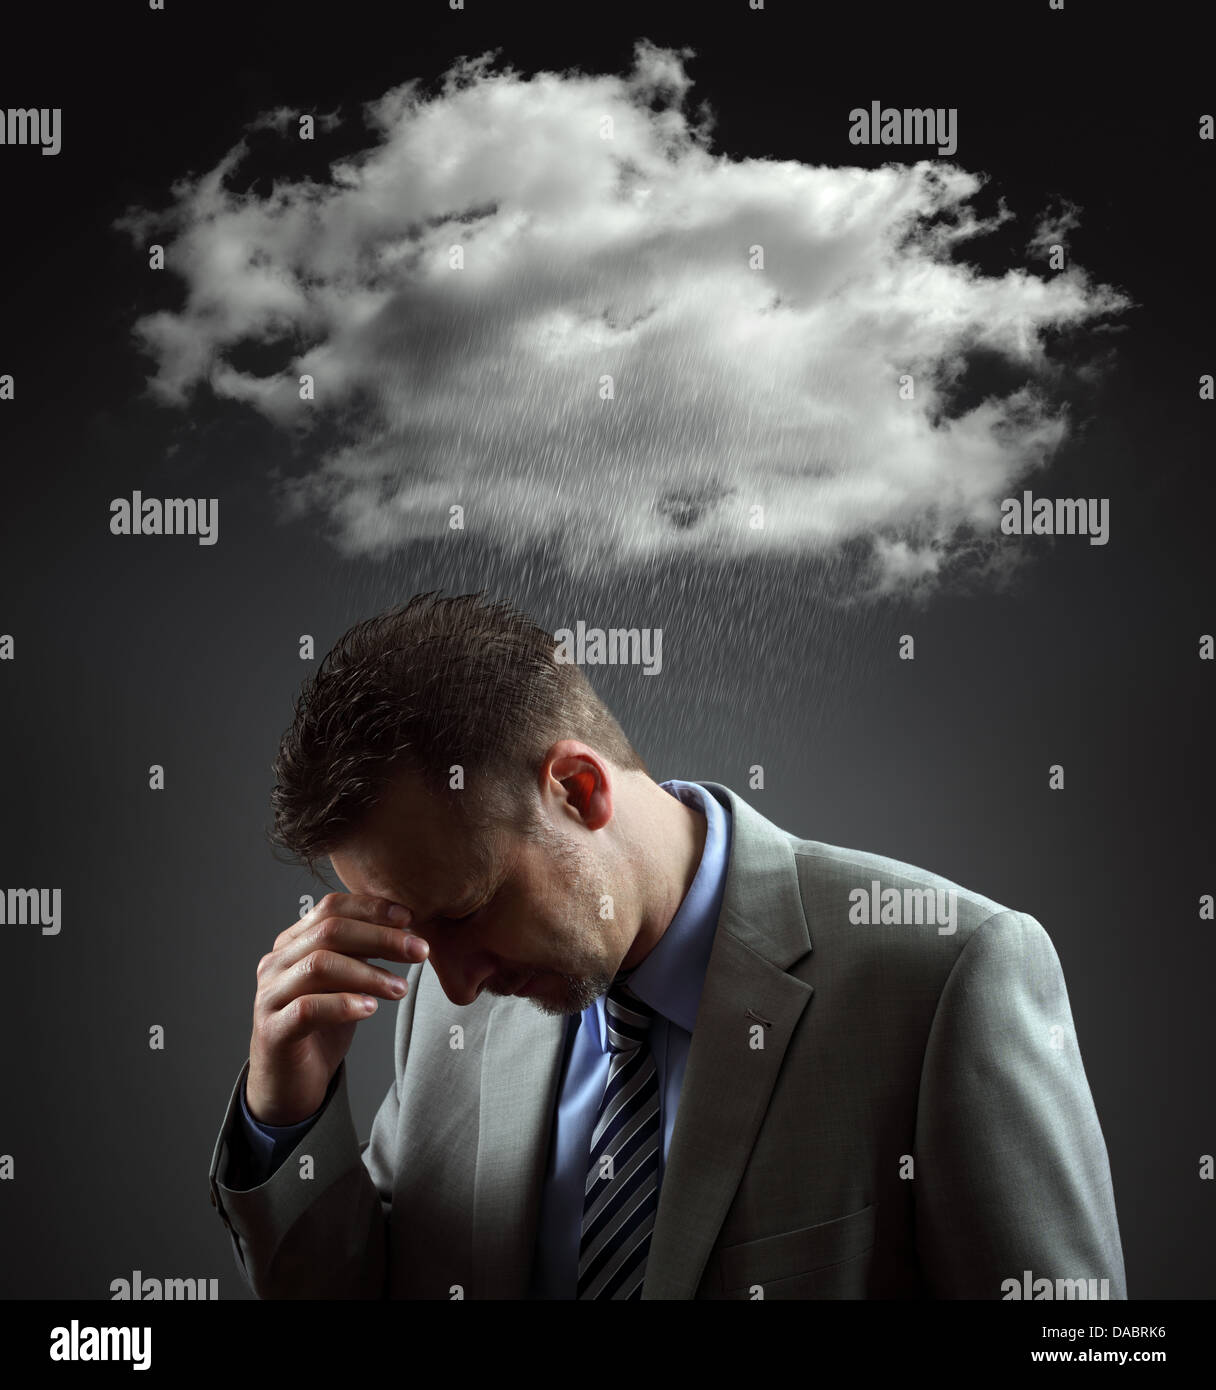 Depressed businessman - Stock Image